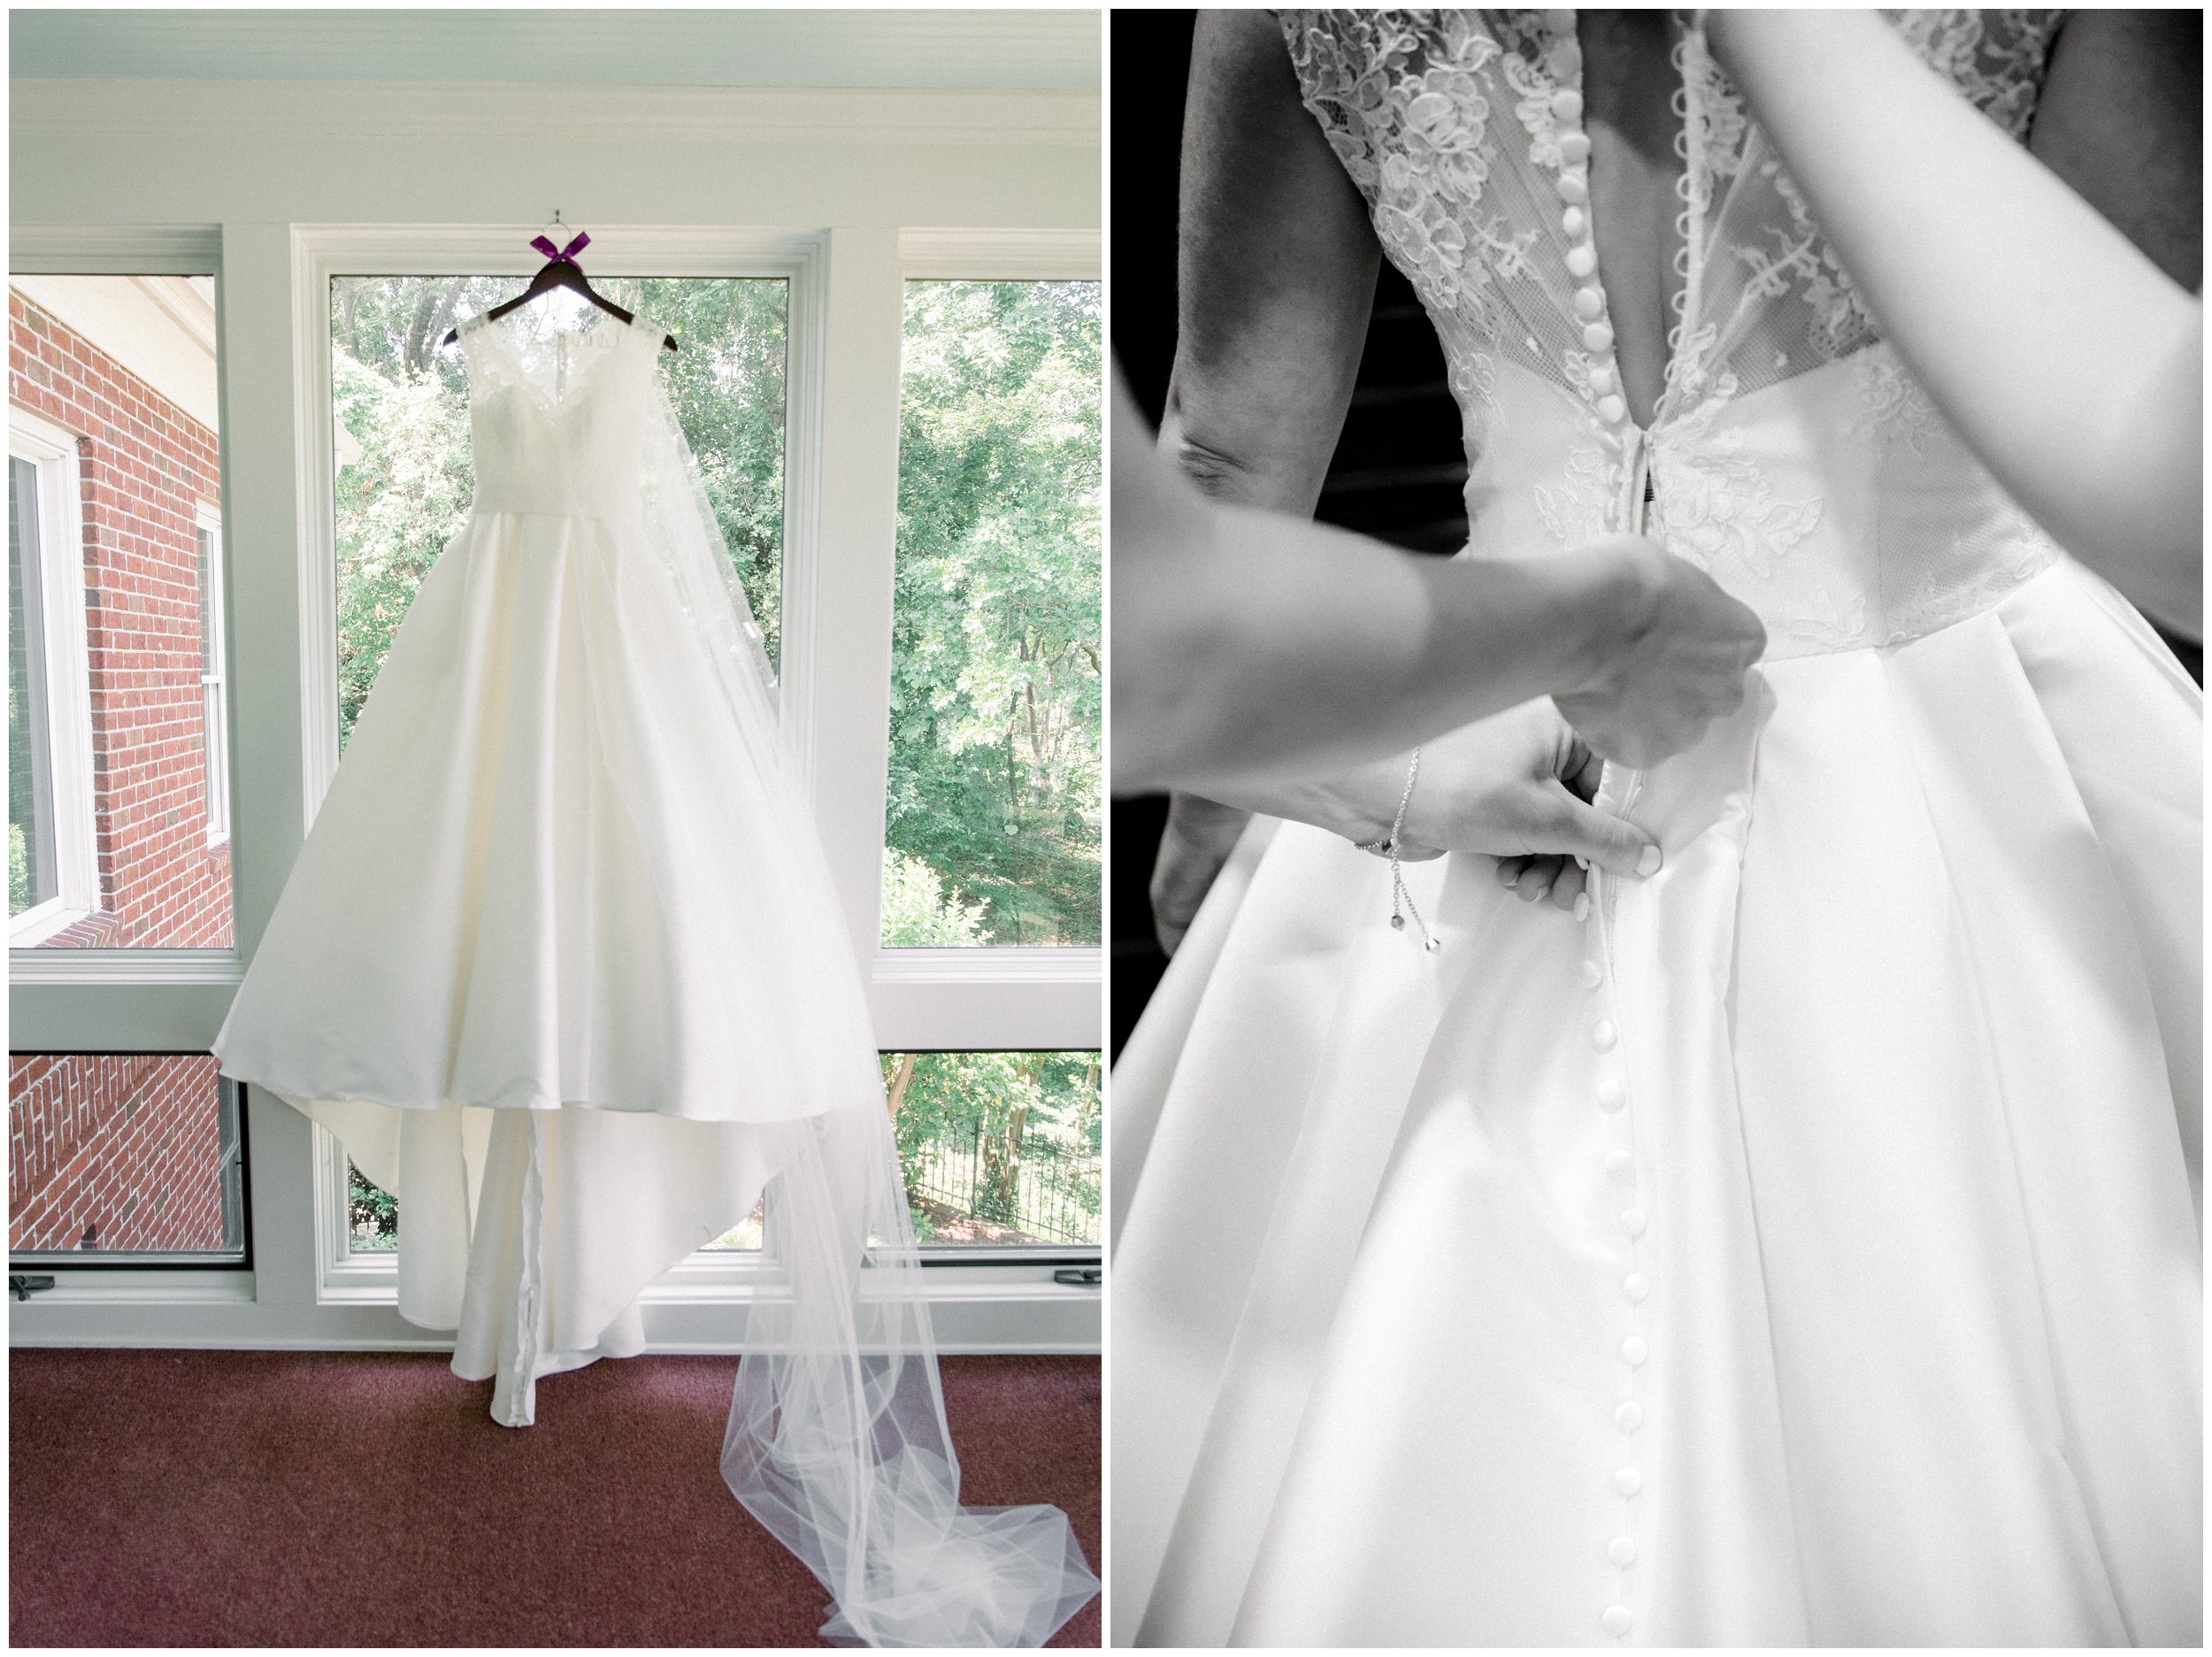 timeless wedding dress and details